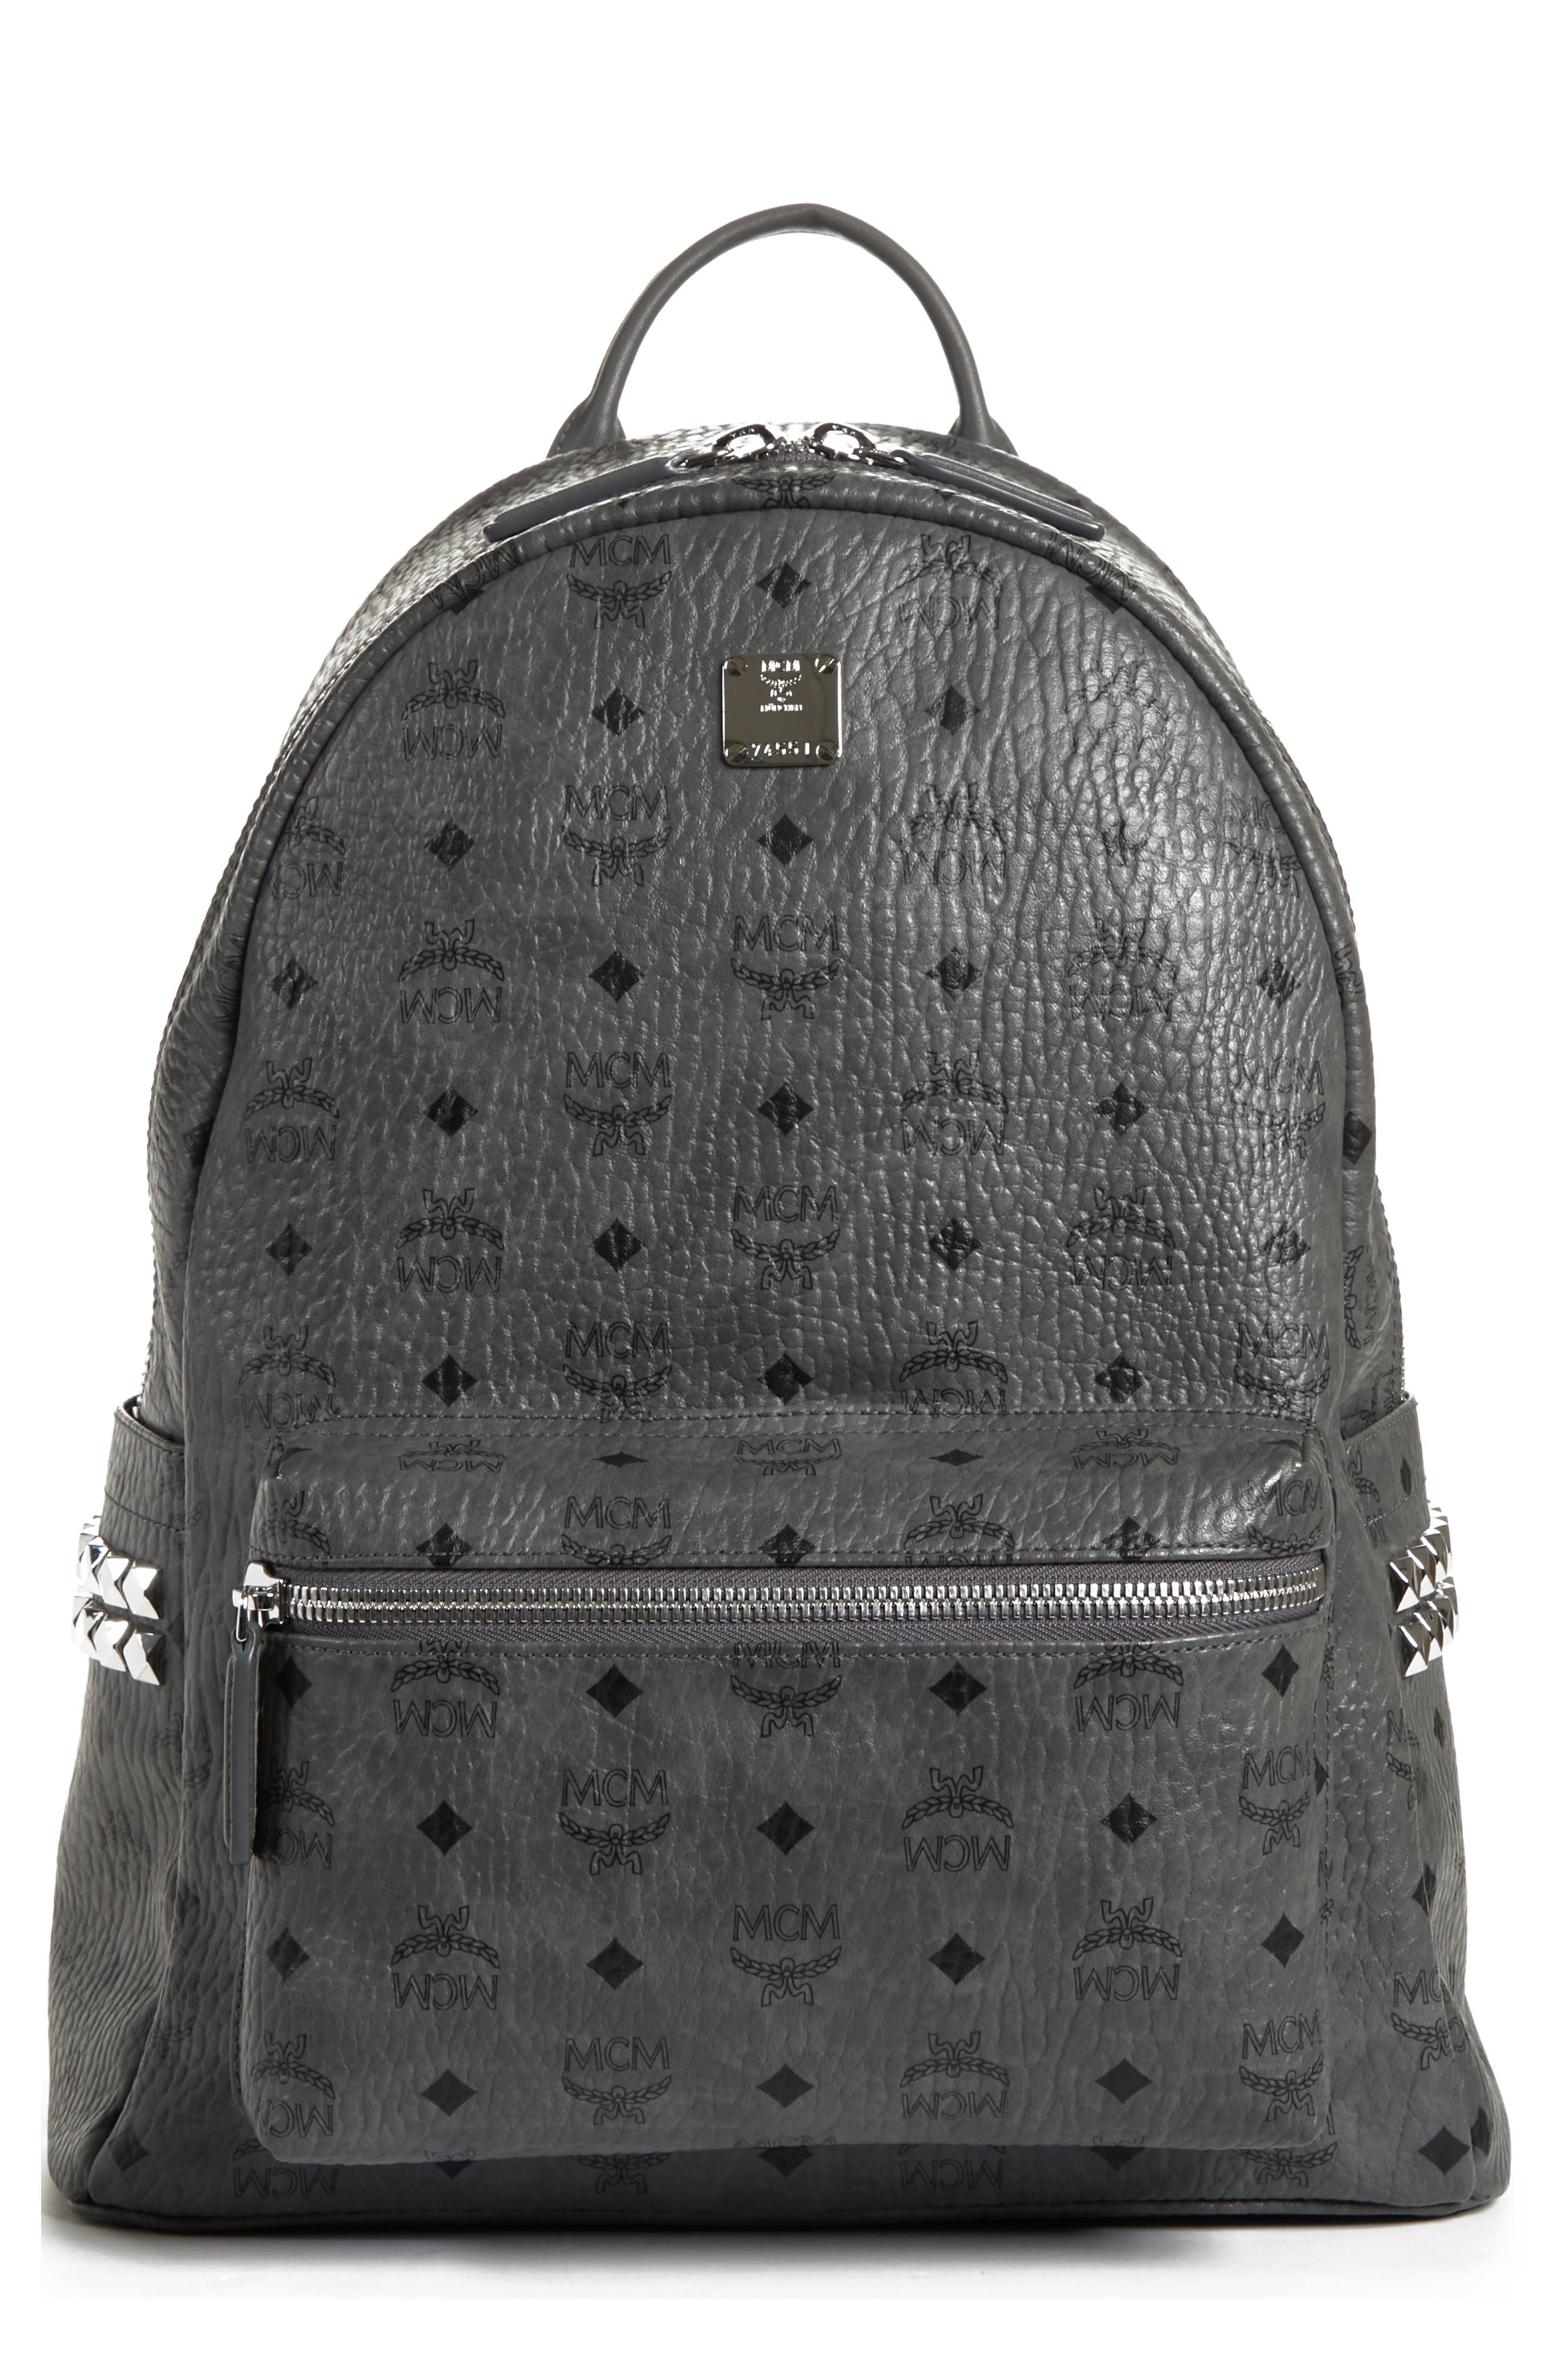 dcb9ed3c1088 MCM - Resnick Backpack In White Logo Nylon for Men - Lyst .